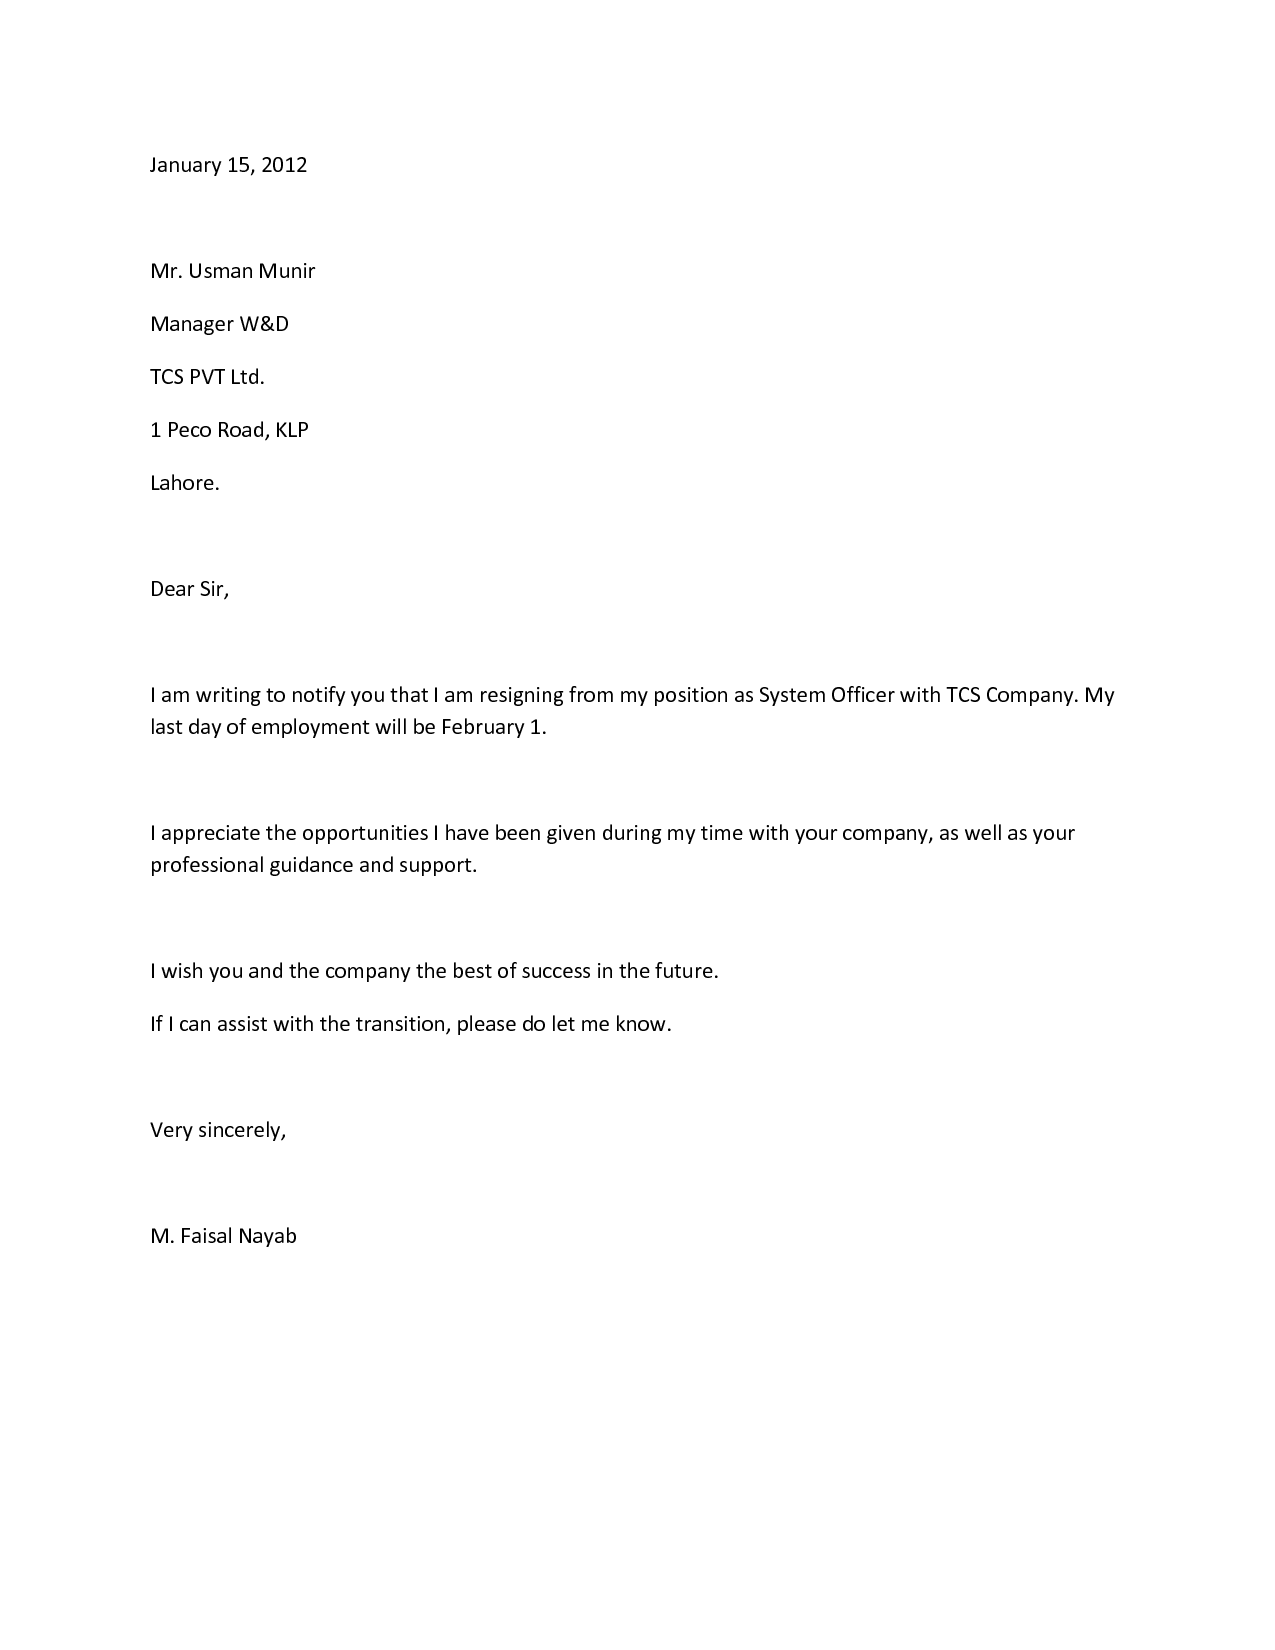 a letter of resignation free download doc template pdf format – Free Letter of Resignation Template Word